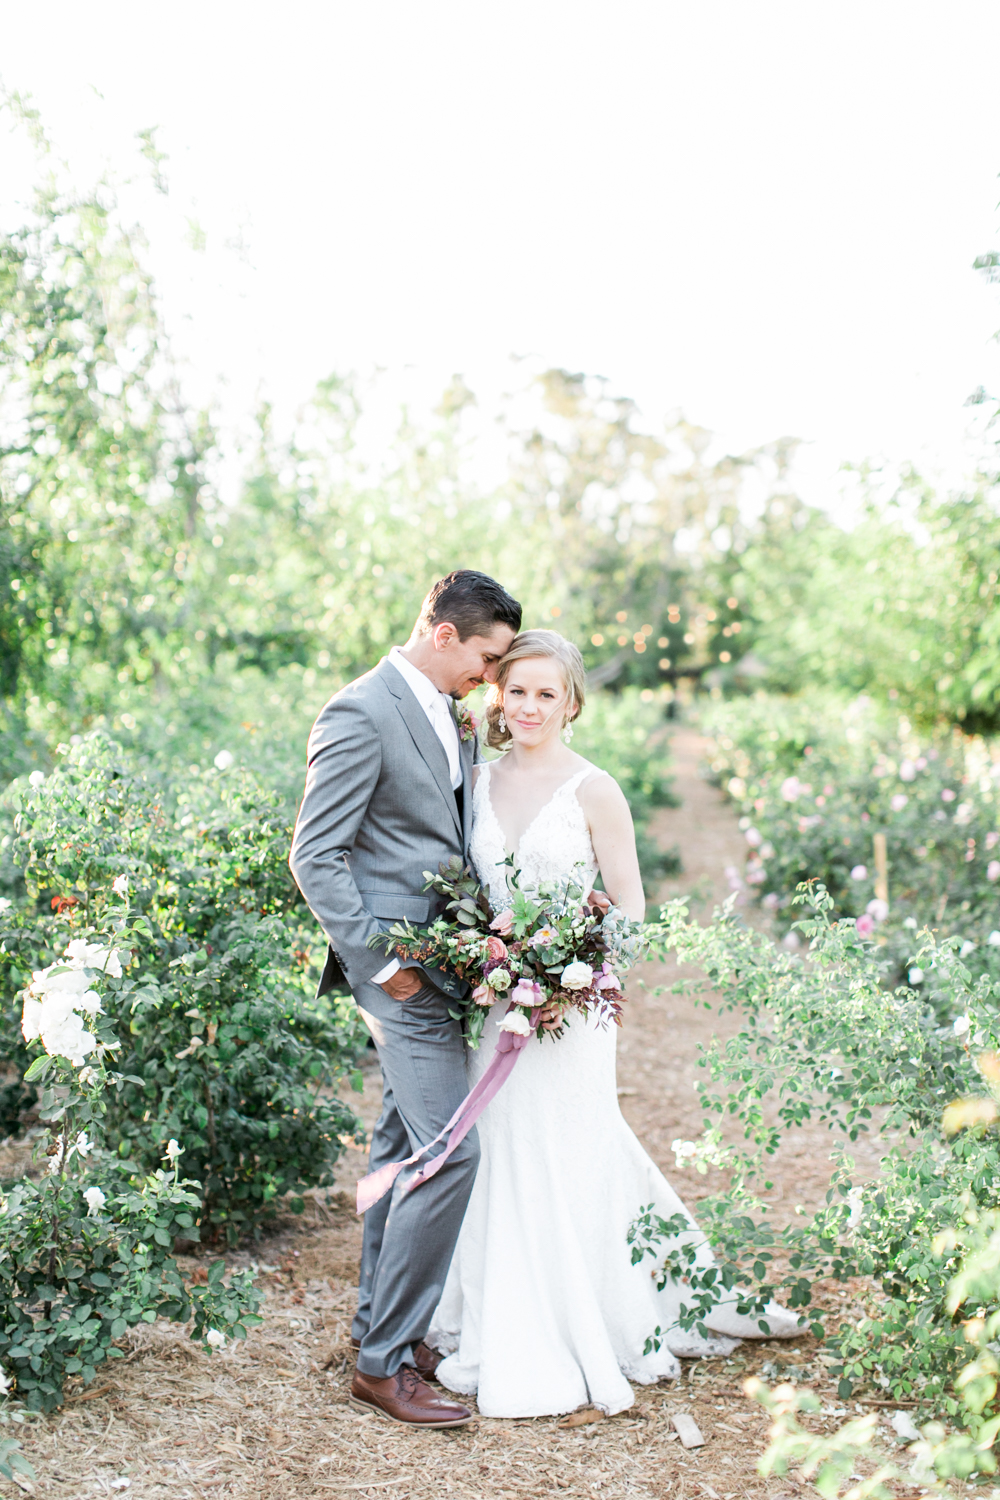 Bride and groom take wedding photos at the Walnut Grove in Moorpark, Ca.